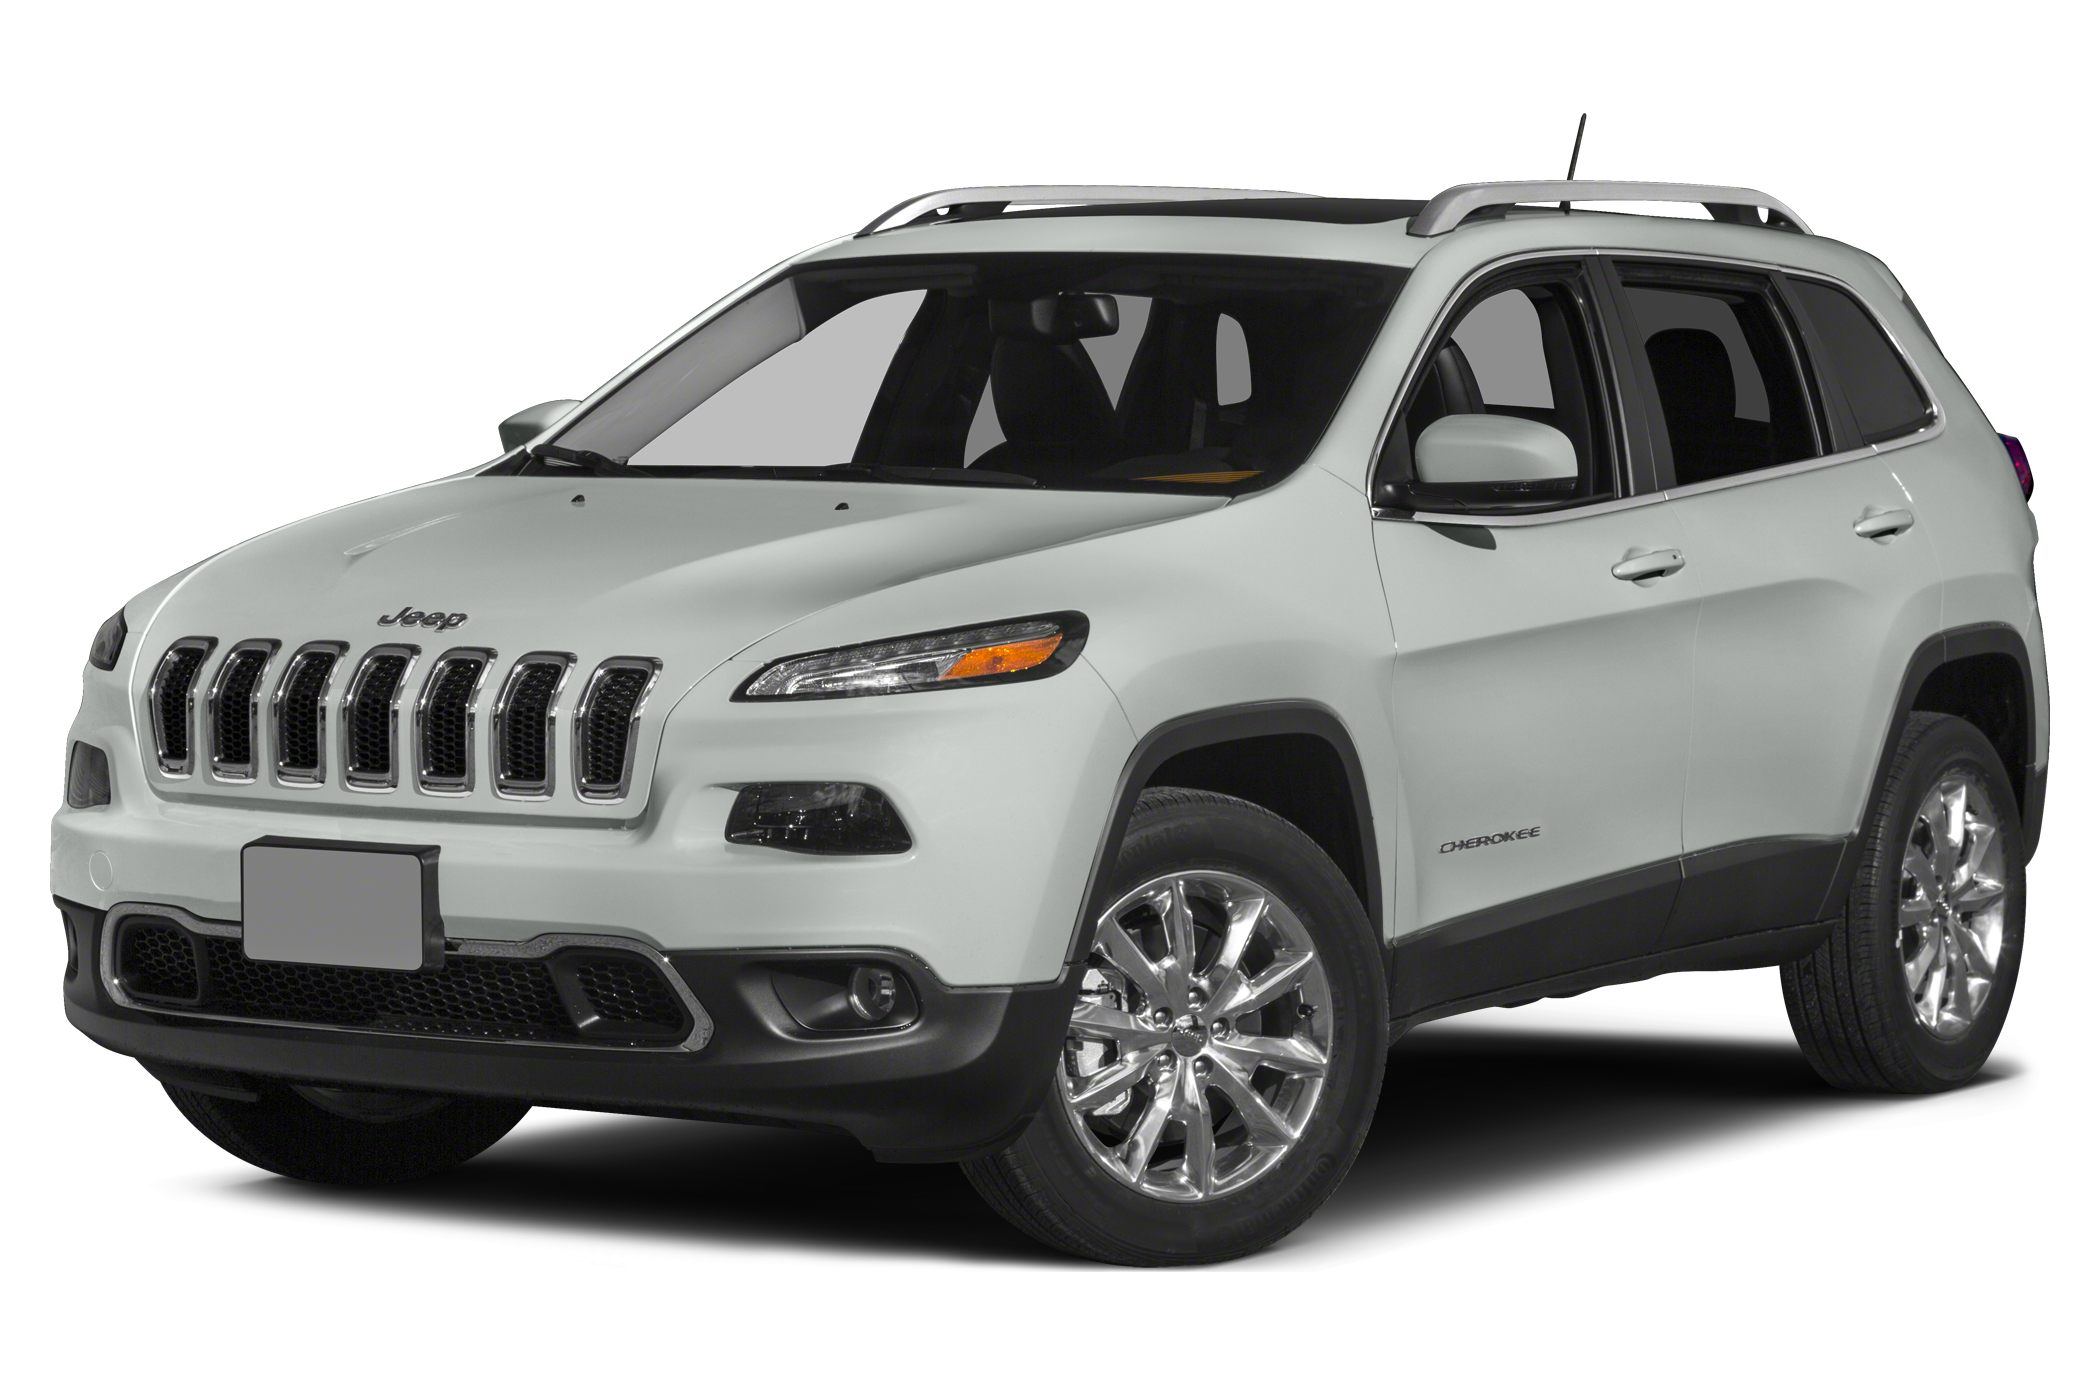 2015 Jeep Cherokee Sport SUV for sale in Lexington for $23,305 with 1 miles